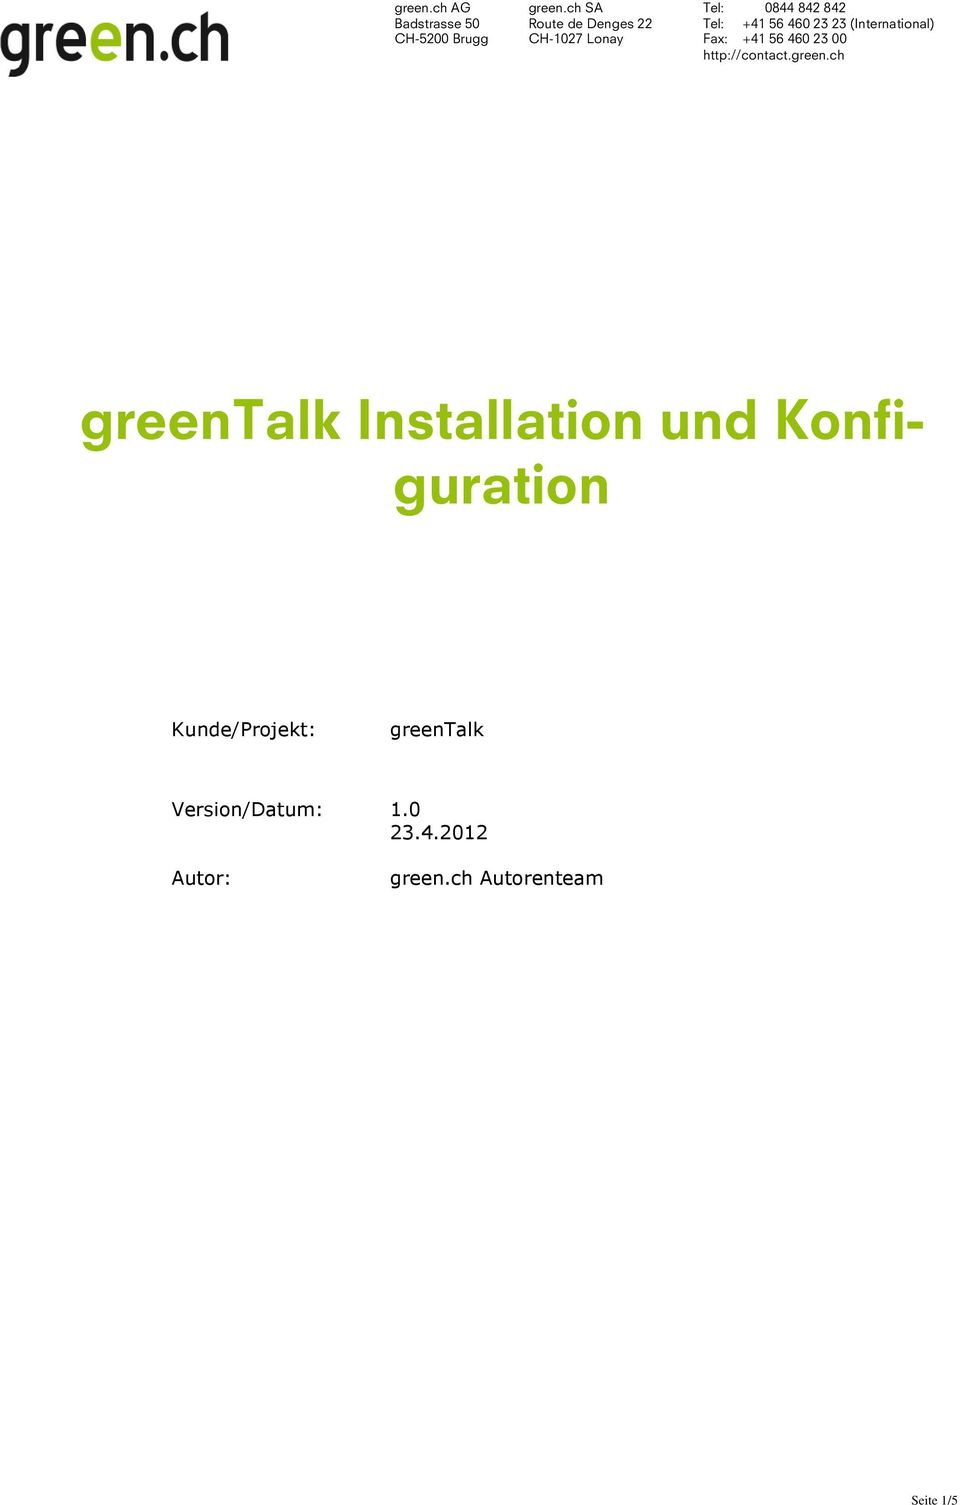 greentalk Version/Datum: 1.0 23.